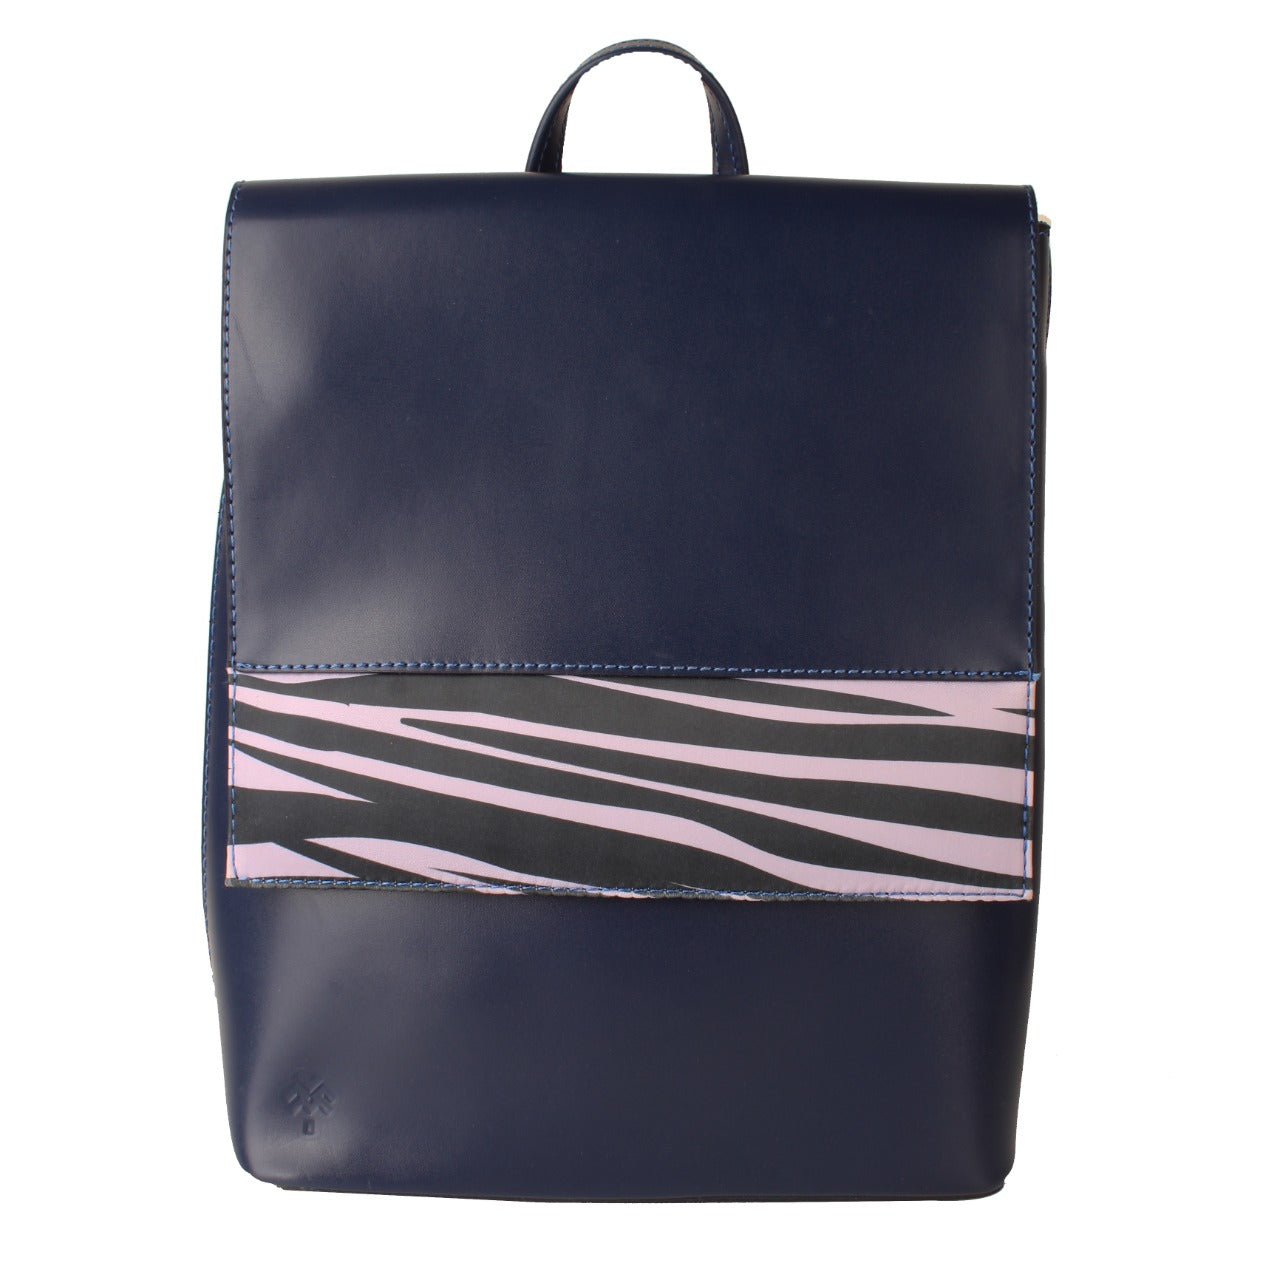 Wild Thing City Bag Lavender & Black